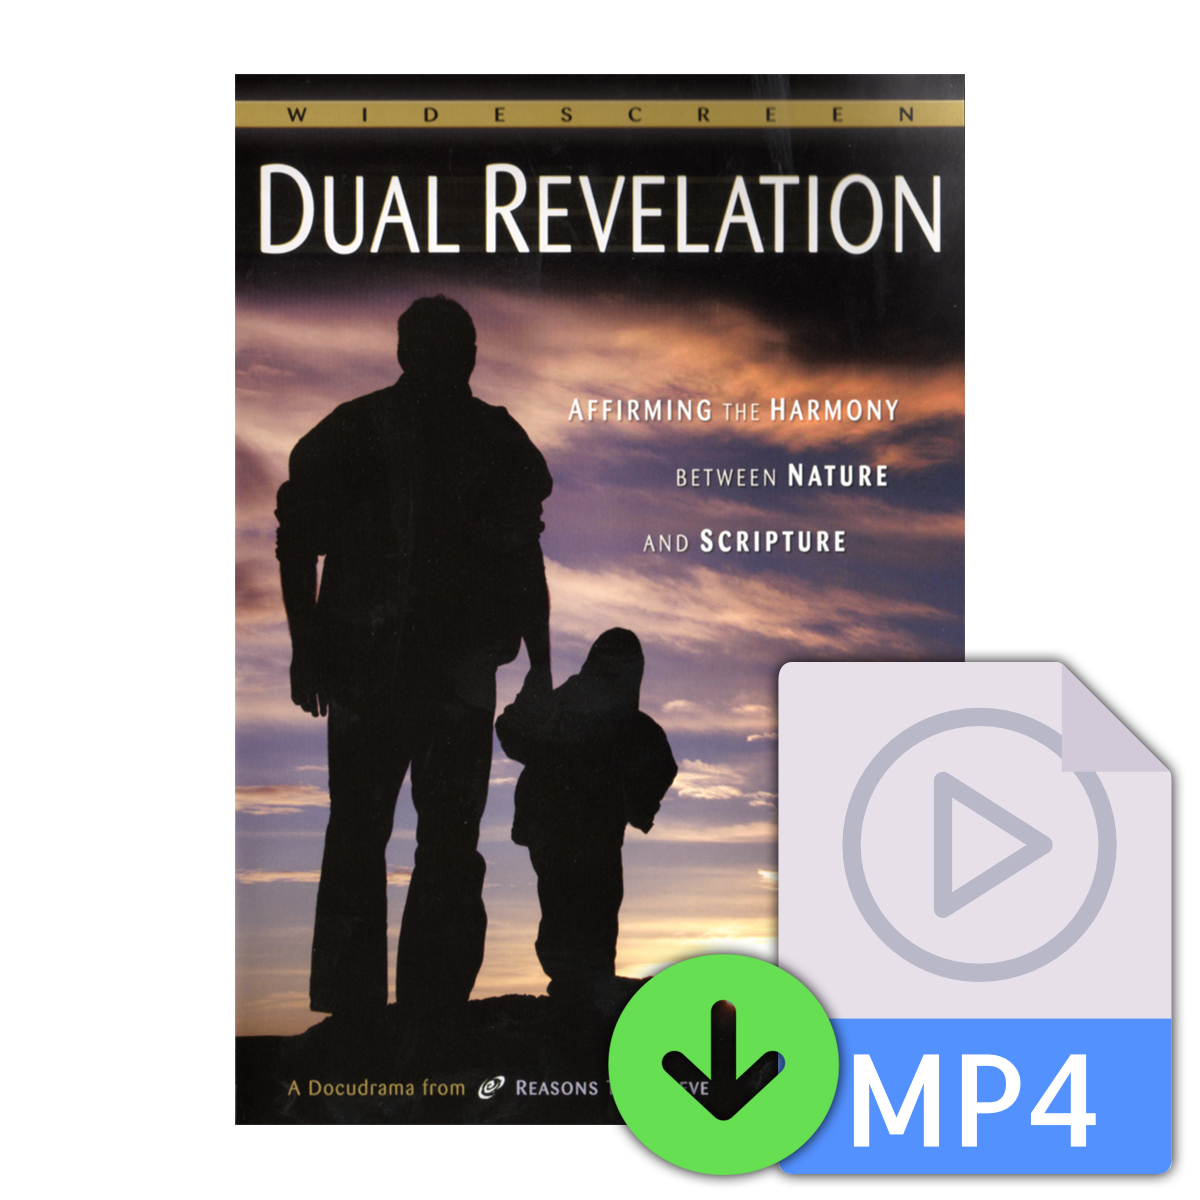 Dual Revelation [Downloadable Video] Image